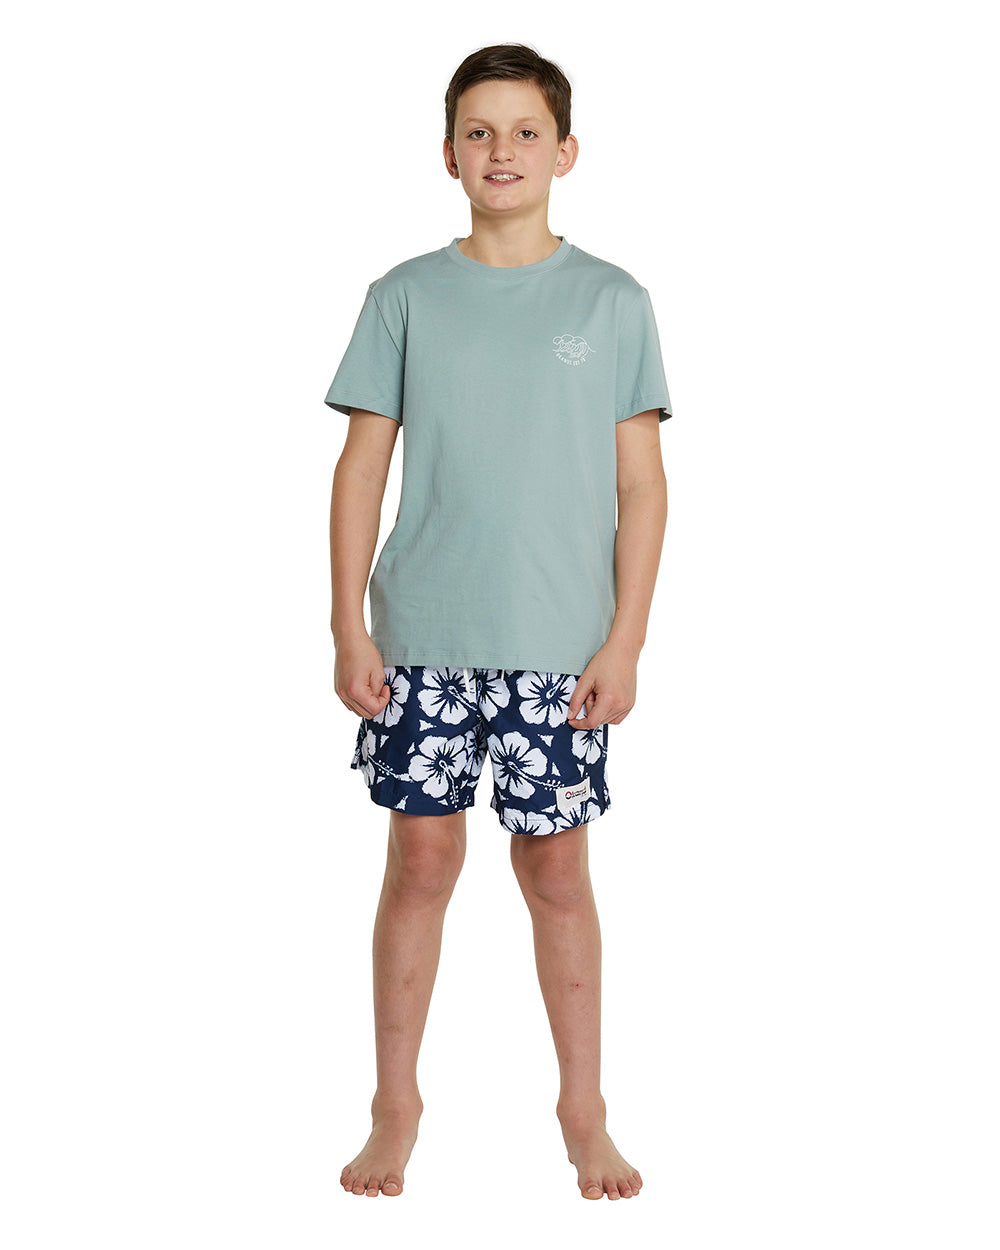 Kids T'S - Crashing Waves - Sage